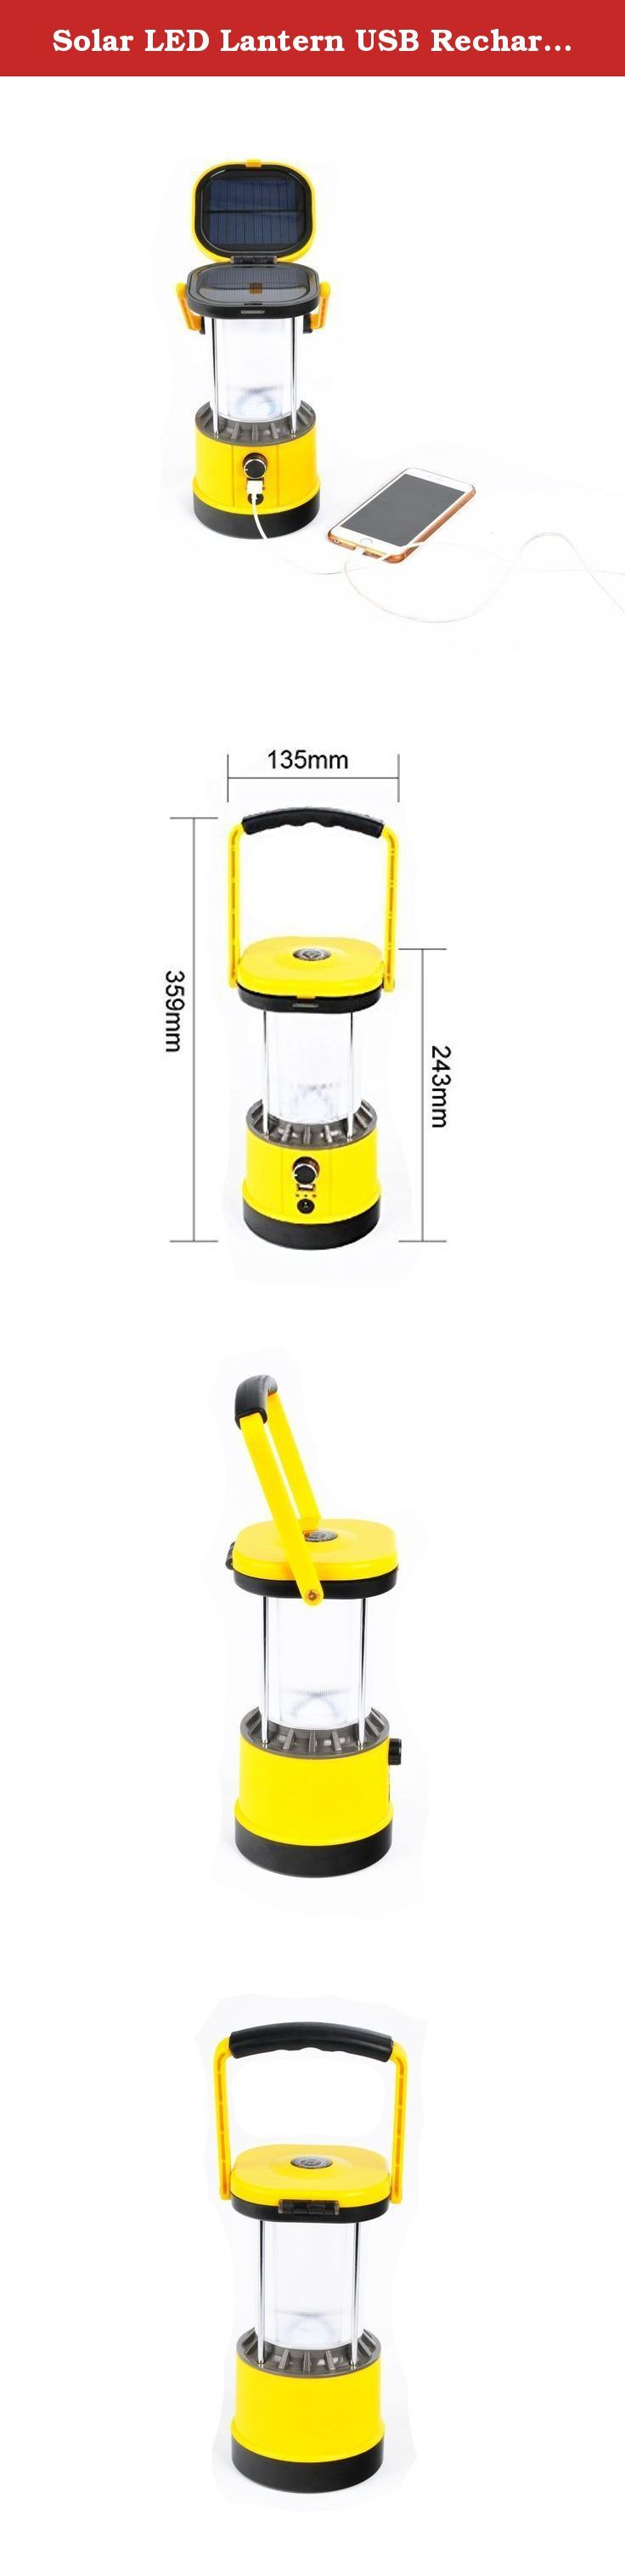 Solar LED Lantern USB Rechargeable Camping Lantern Portable With Compass 4W LED/ 2.2W Solar. Product Information: Model: SL-601 Solar panel: 2.2W Lamp: 4w LED Battery: 7.4V/2.0Ah Lithium-ion Luminous Flux: 320LM 110V/240V Cahrge: Yes USD 5V Output: Yes Working Time: 6-8 hours(on highest setting) Working Lifetime(Hour): 100000 Charging Time: Solar panel 6-8 hours under bright sunlight; AC adapter with 2-3 hours Charging Method: sunlight/AC Adaptor Accessories: Compass & AC charger Usage...